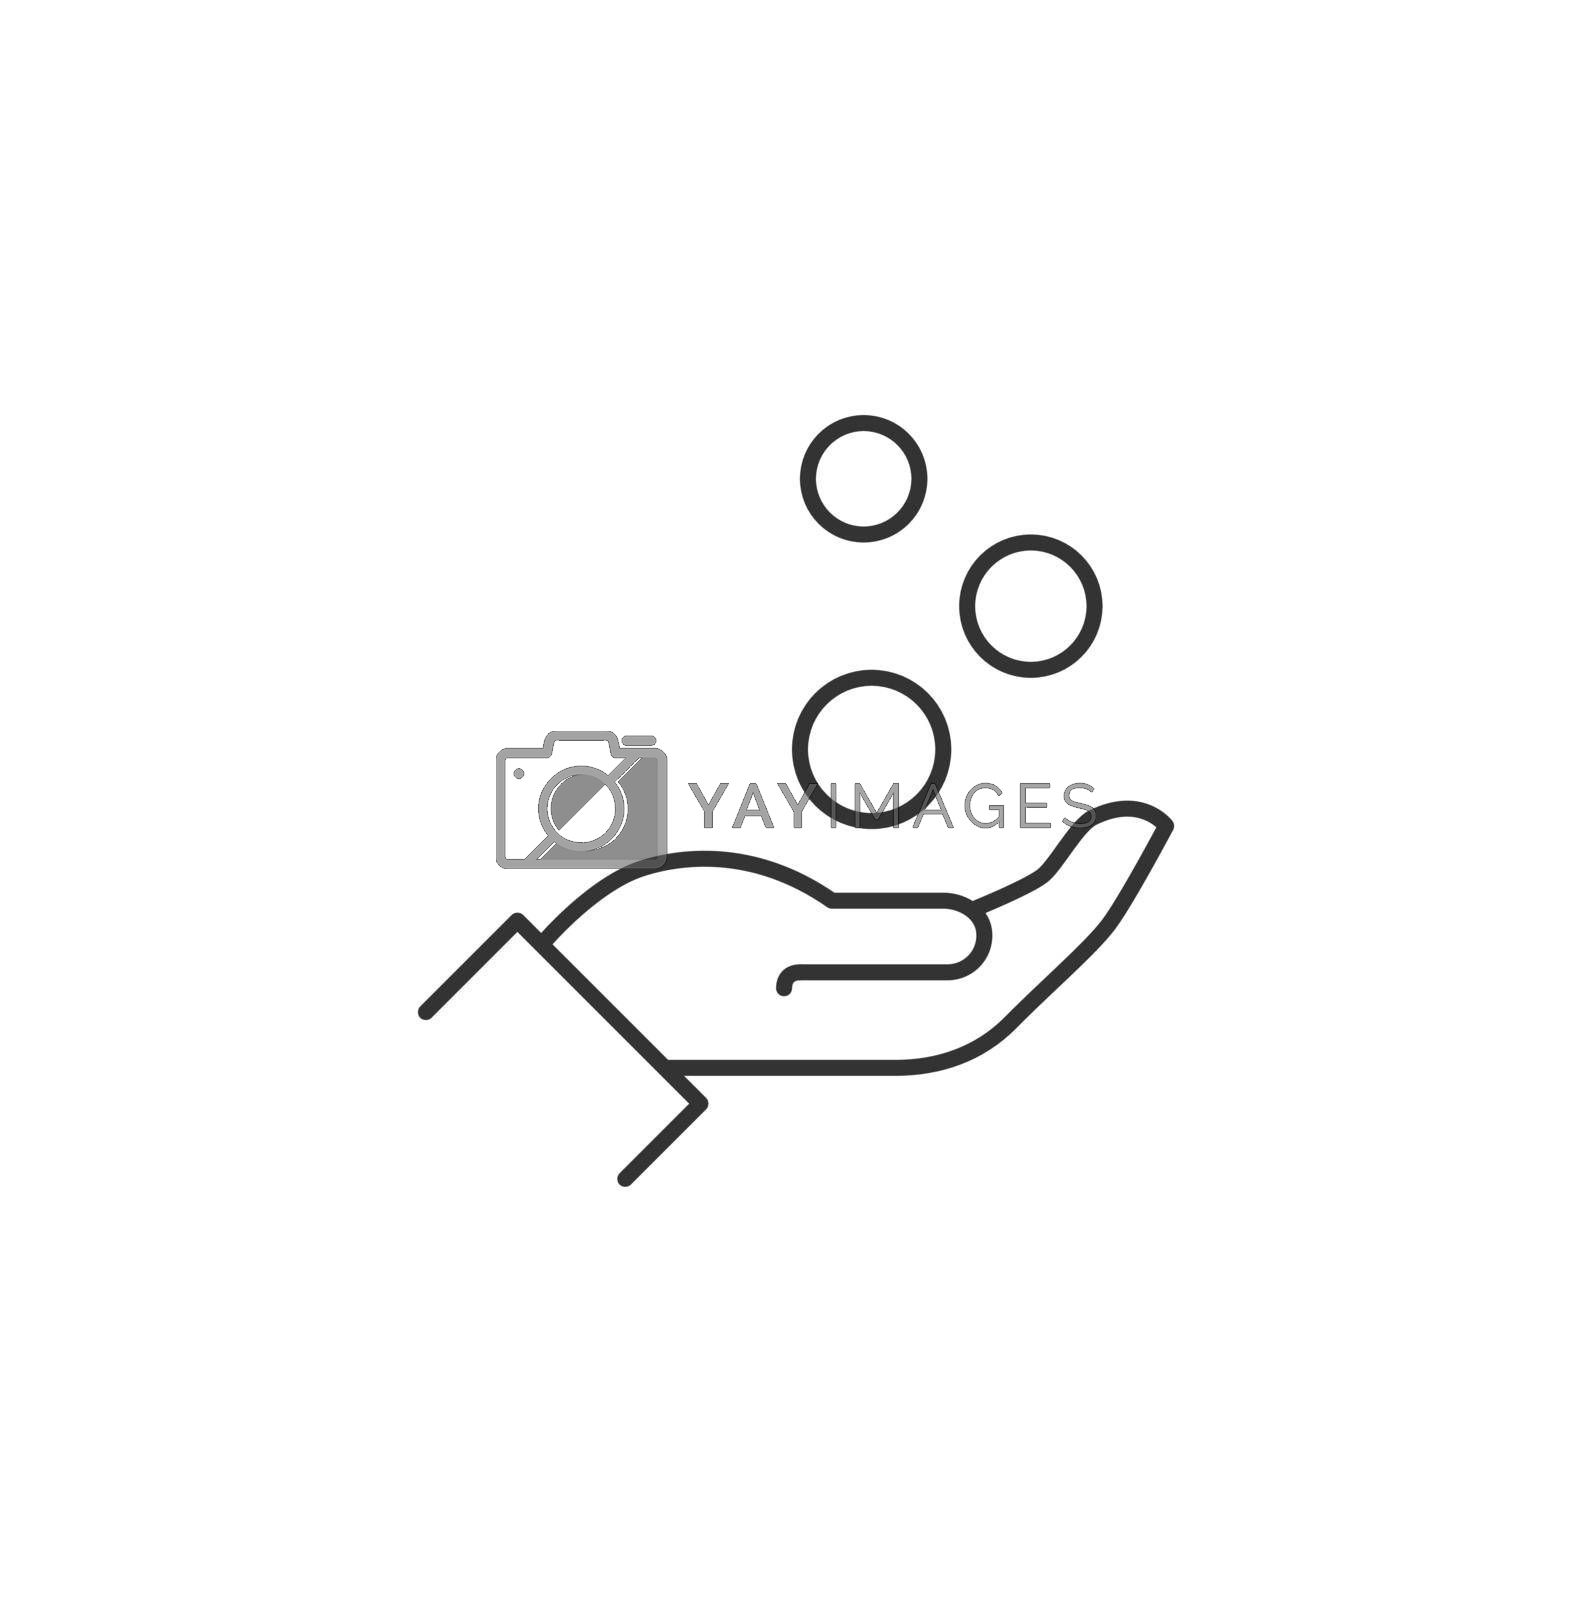 Coins Fall Into the Hand Related Vector Line Icon. Sign Isolated on the White Background. Editable Stroke EPS file. Vector illustration.